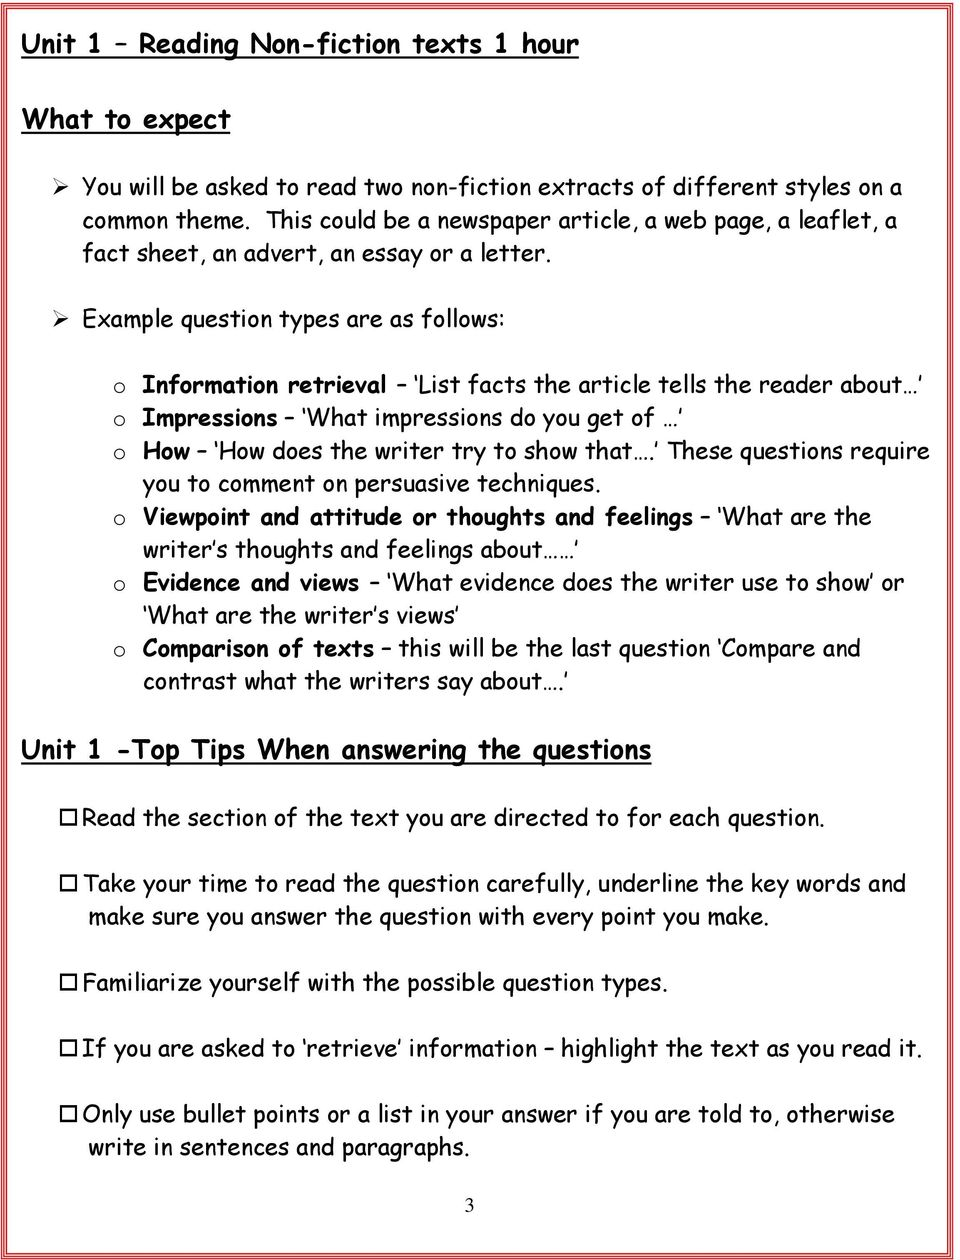 Example question types are as follows: o Information retrieval List facts the article tells the reader about o Impressions What impressions do you get of o How How does the writer try to show that.